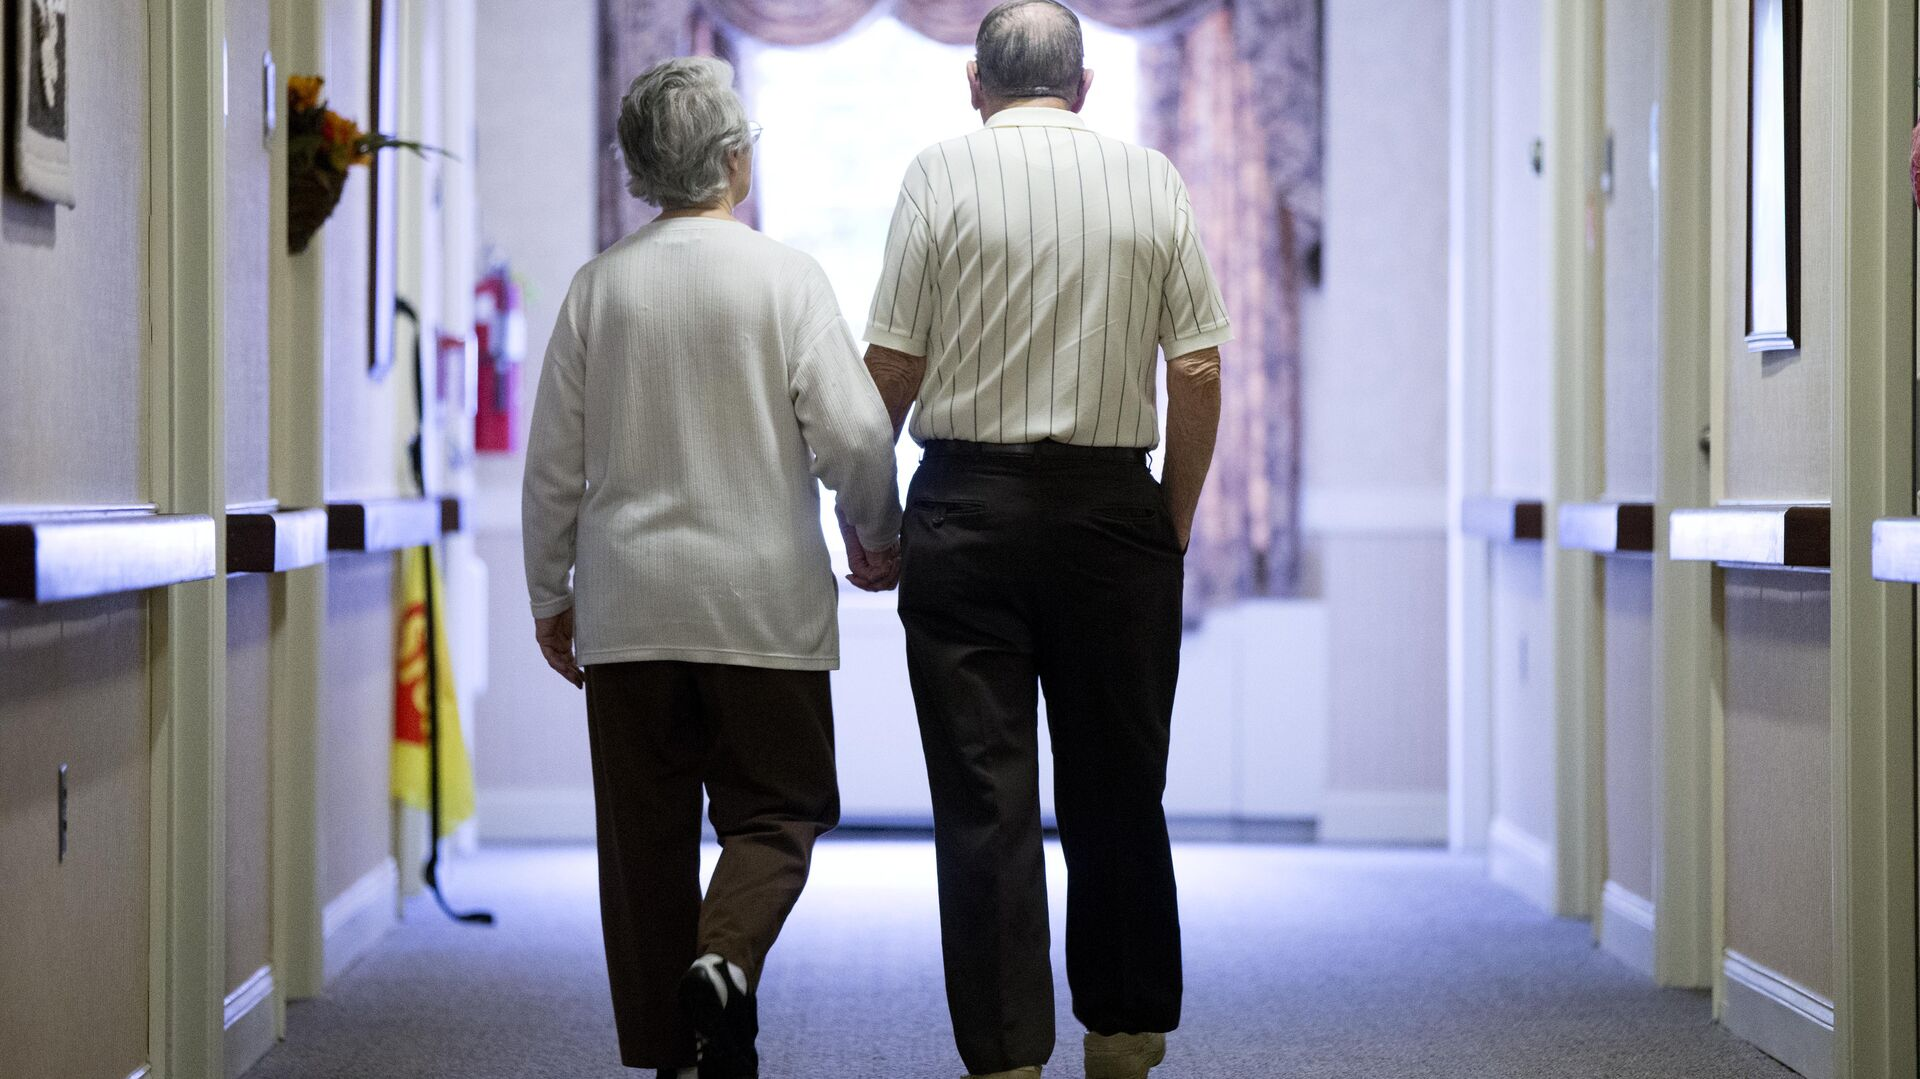 Decima Assise, who has Alzheimer's disease, and Harry Lomping walk the halls, Friday, Nov. 6, 2015, at The Easton Home in Easton, Pa - Sputnik Italia, 1920, 07.06.2021